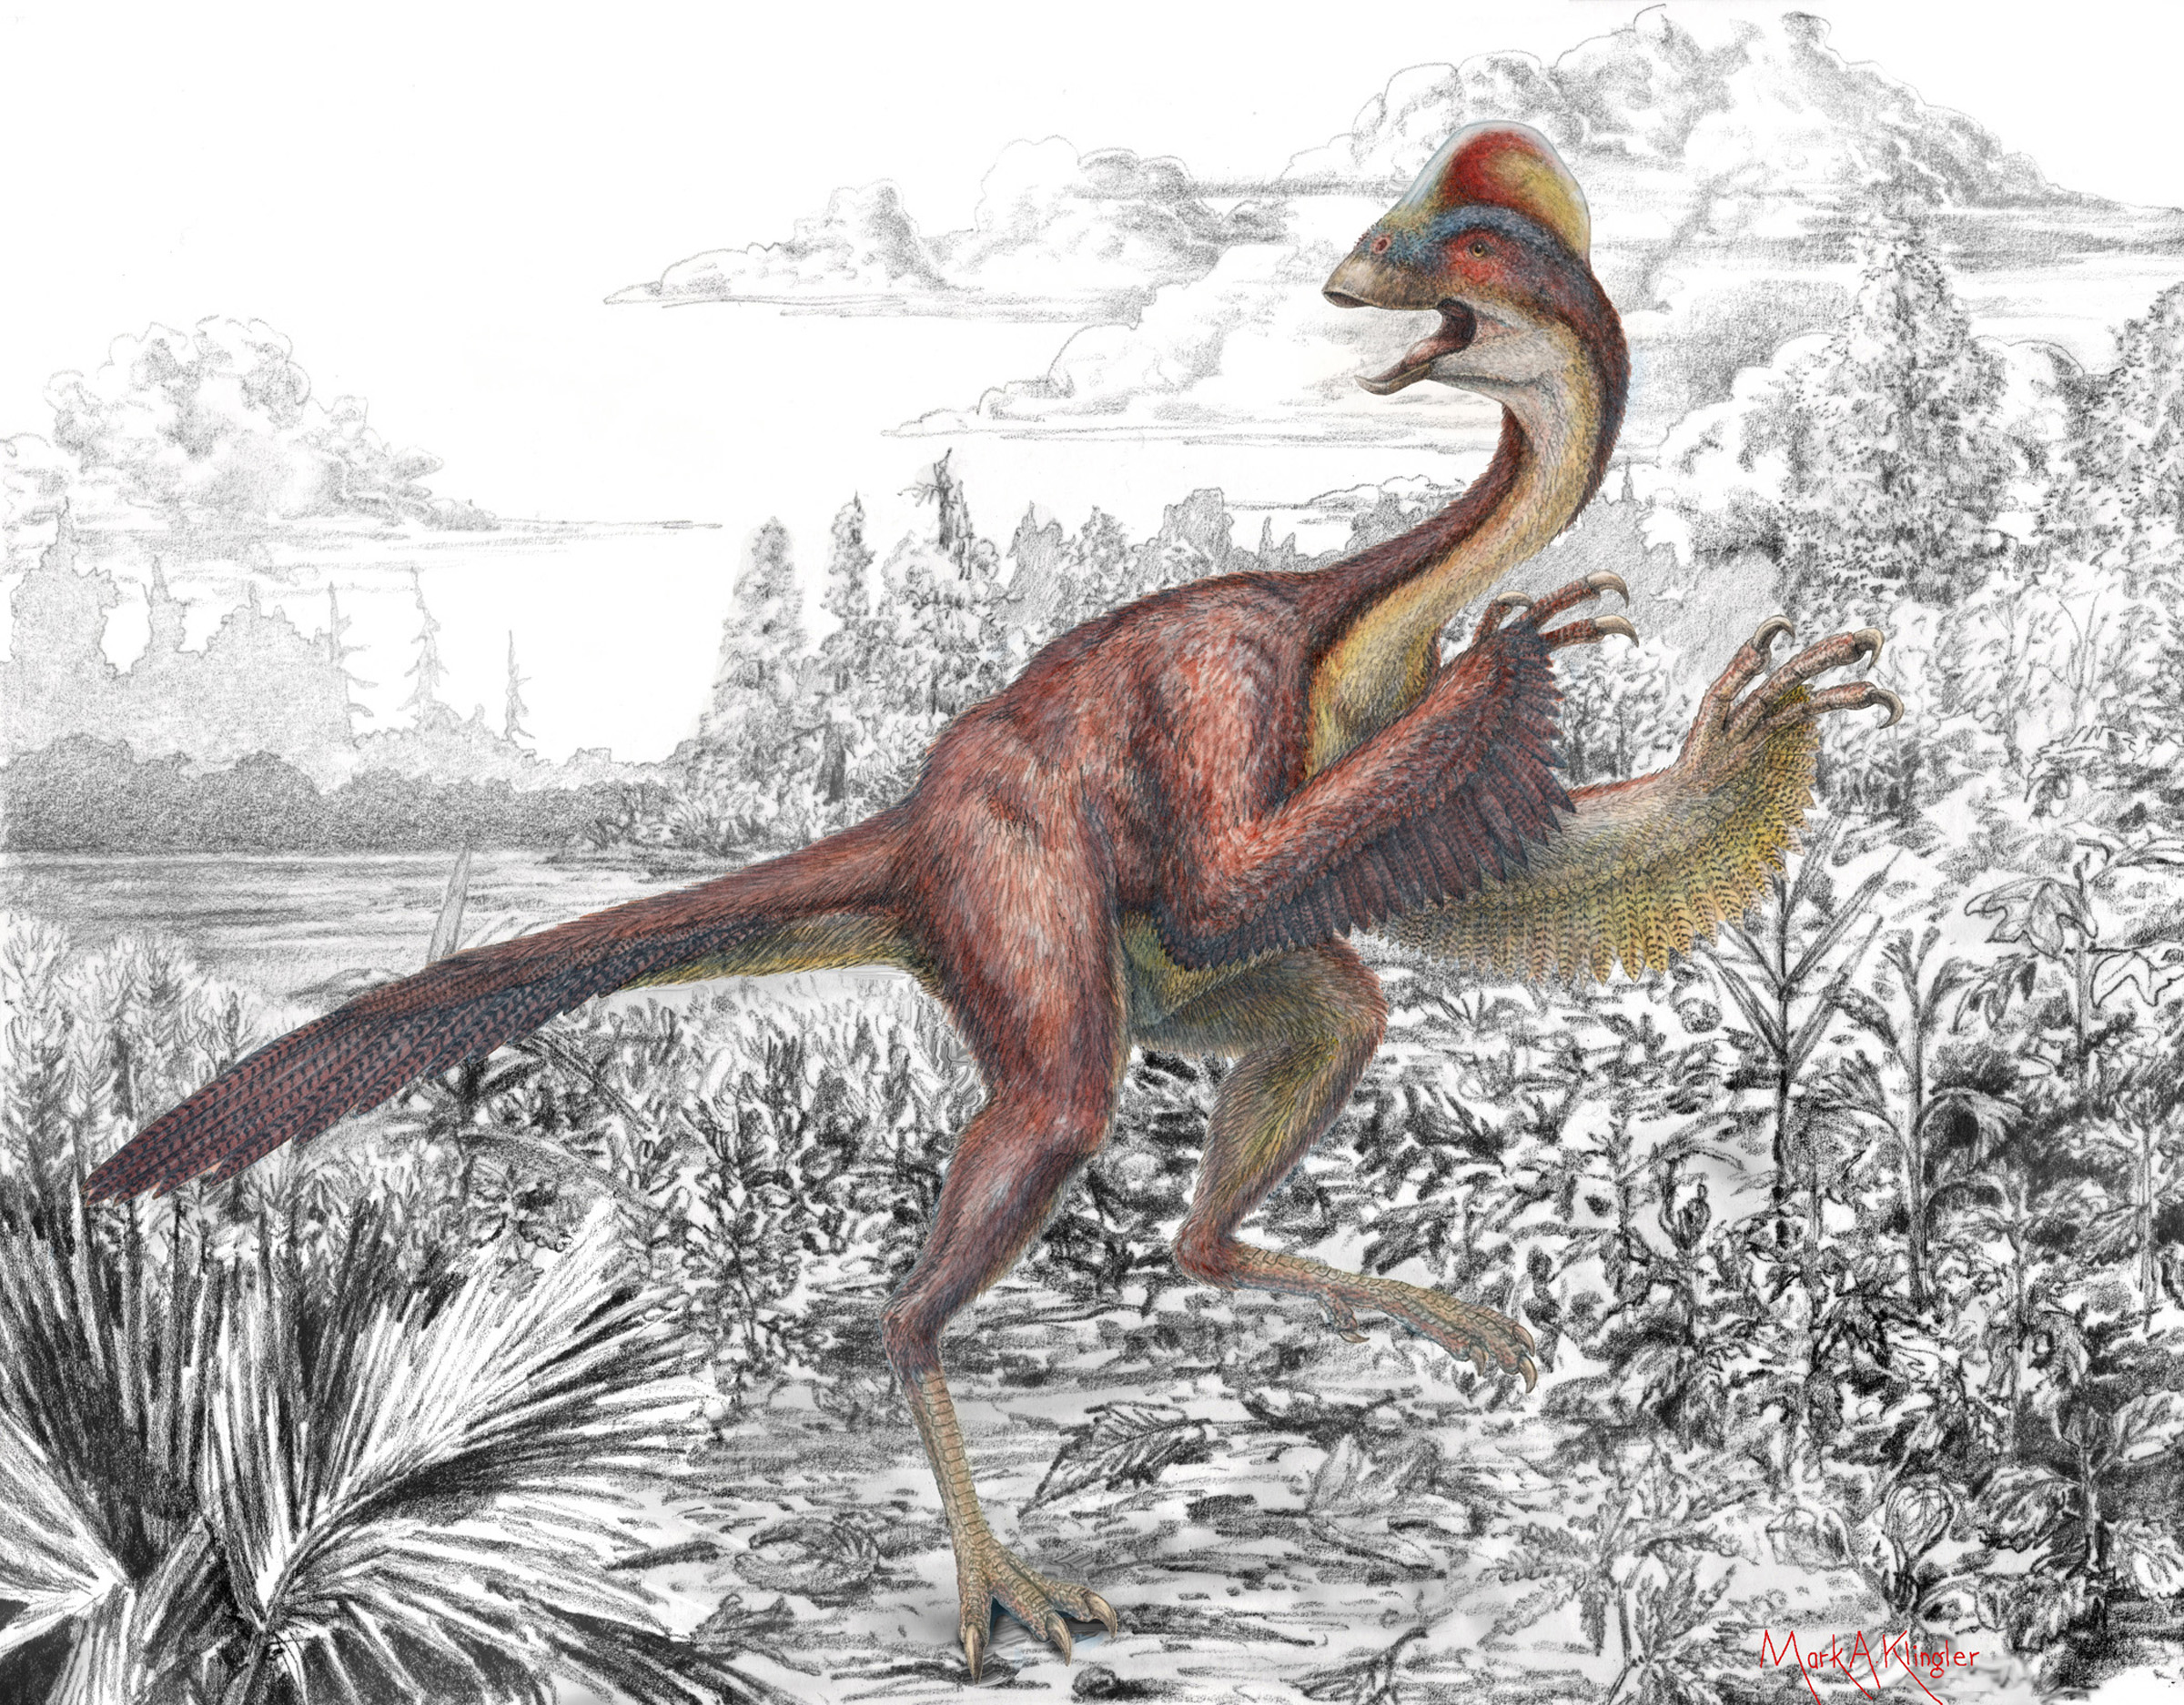 """Anzu wyliei – a bird-like dinosaur nicknamed the """"chicken from hell"""" that roamed the Dakotas 66 million years ago – appears in its natural environment in this artist's depiction. Discovery and description of the new dinosaur was announced by the University of Utah, Carnegie Museum of Natural History and Smithsonian Institution's National Museum of Natural History."""